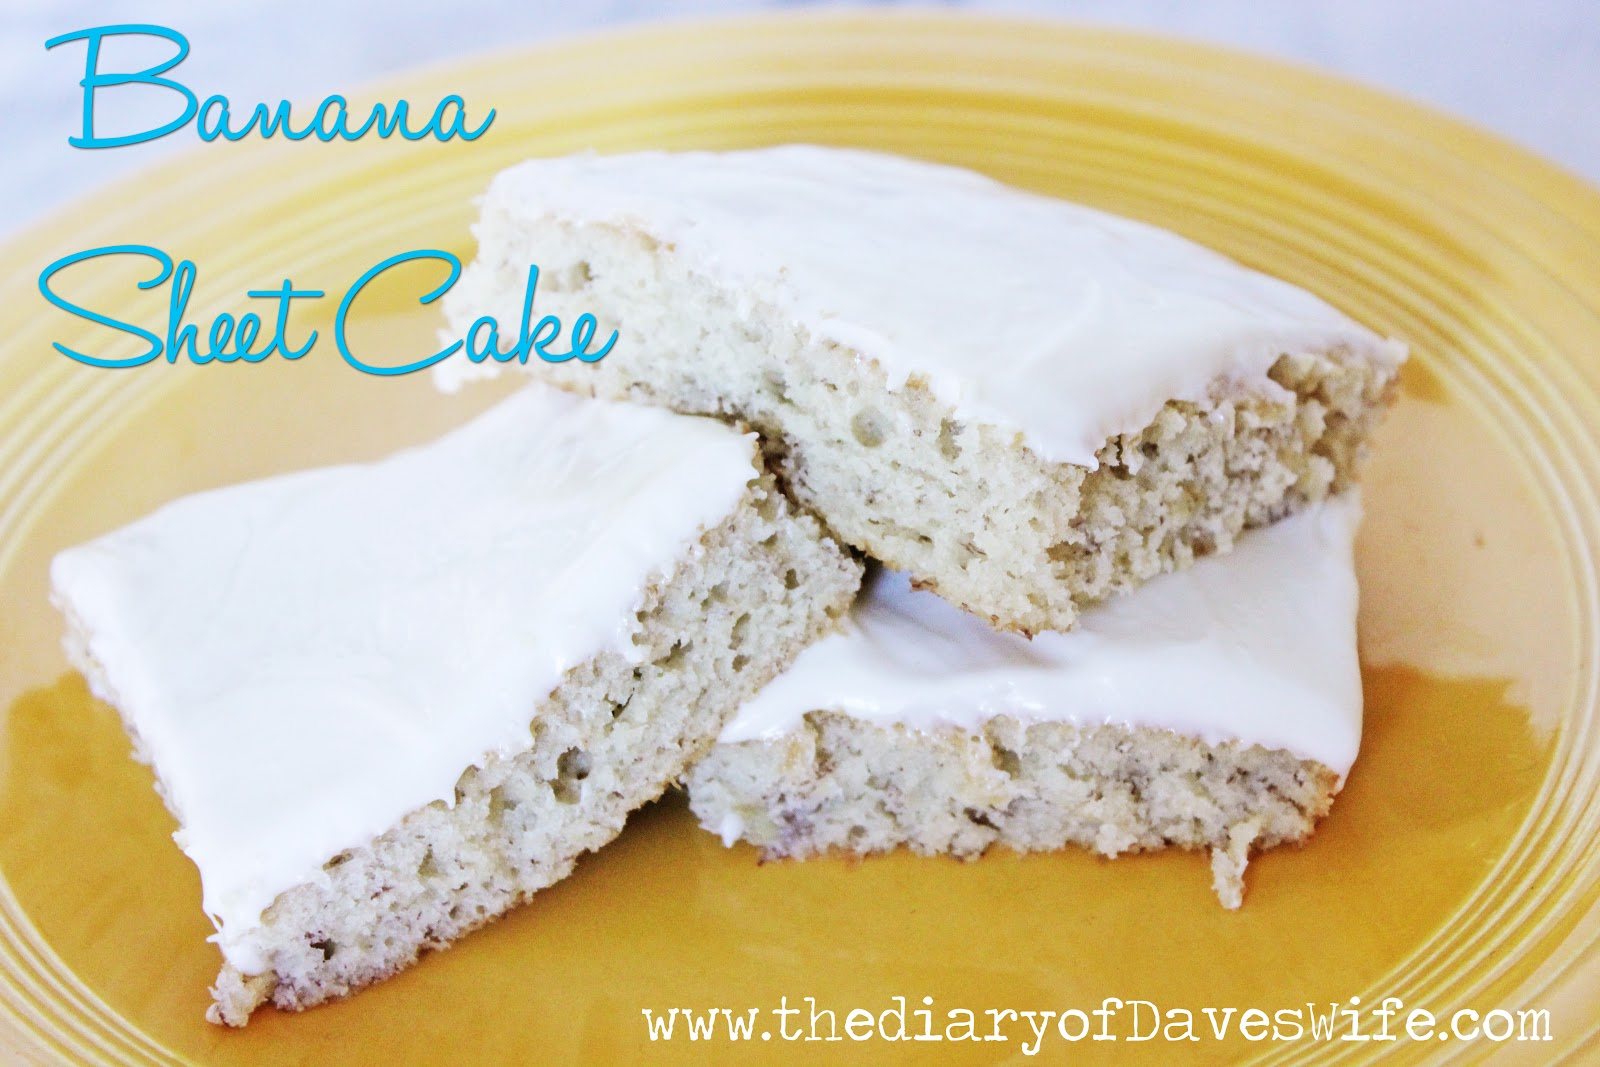 Banana Sheet Cake With Cream Cheese Frosting From Roxanashomebaking ...